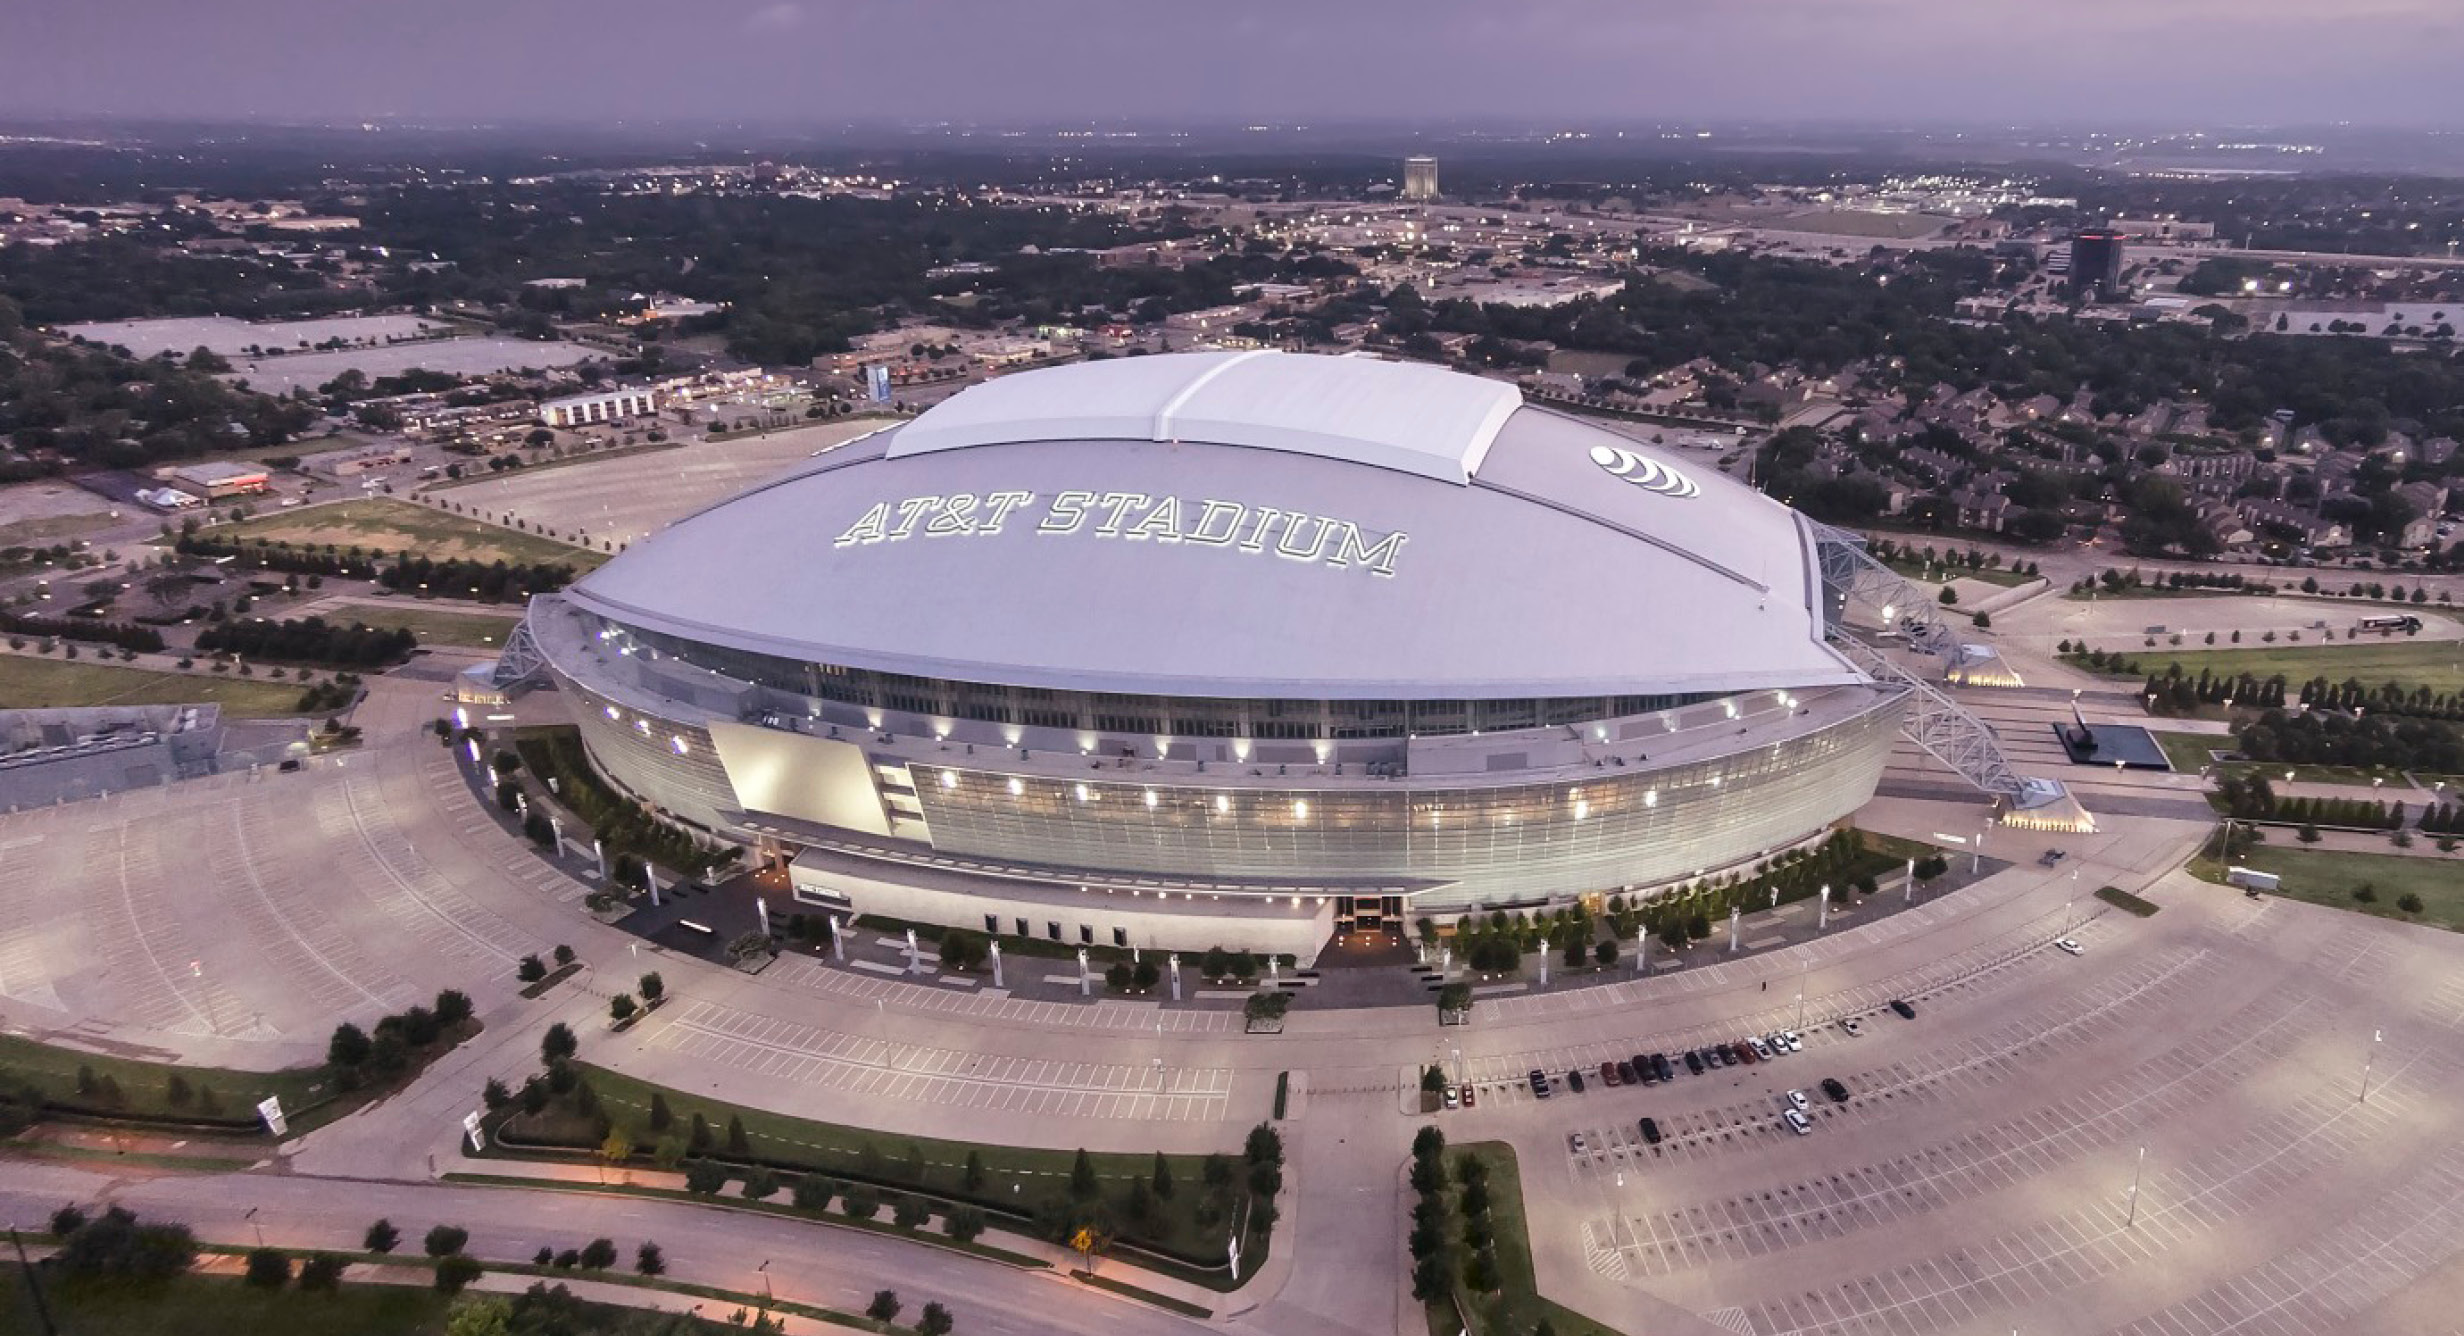 Stadion AT&T